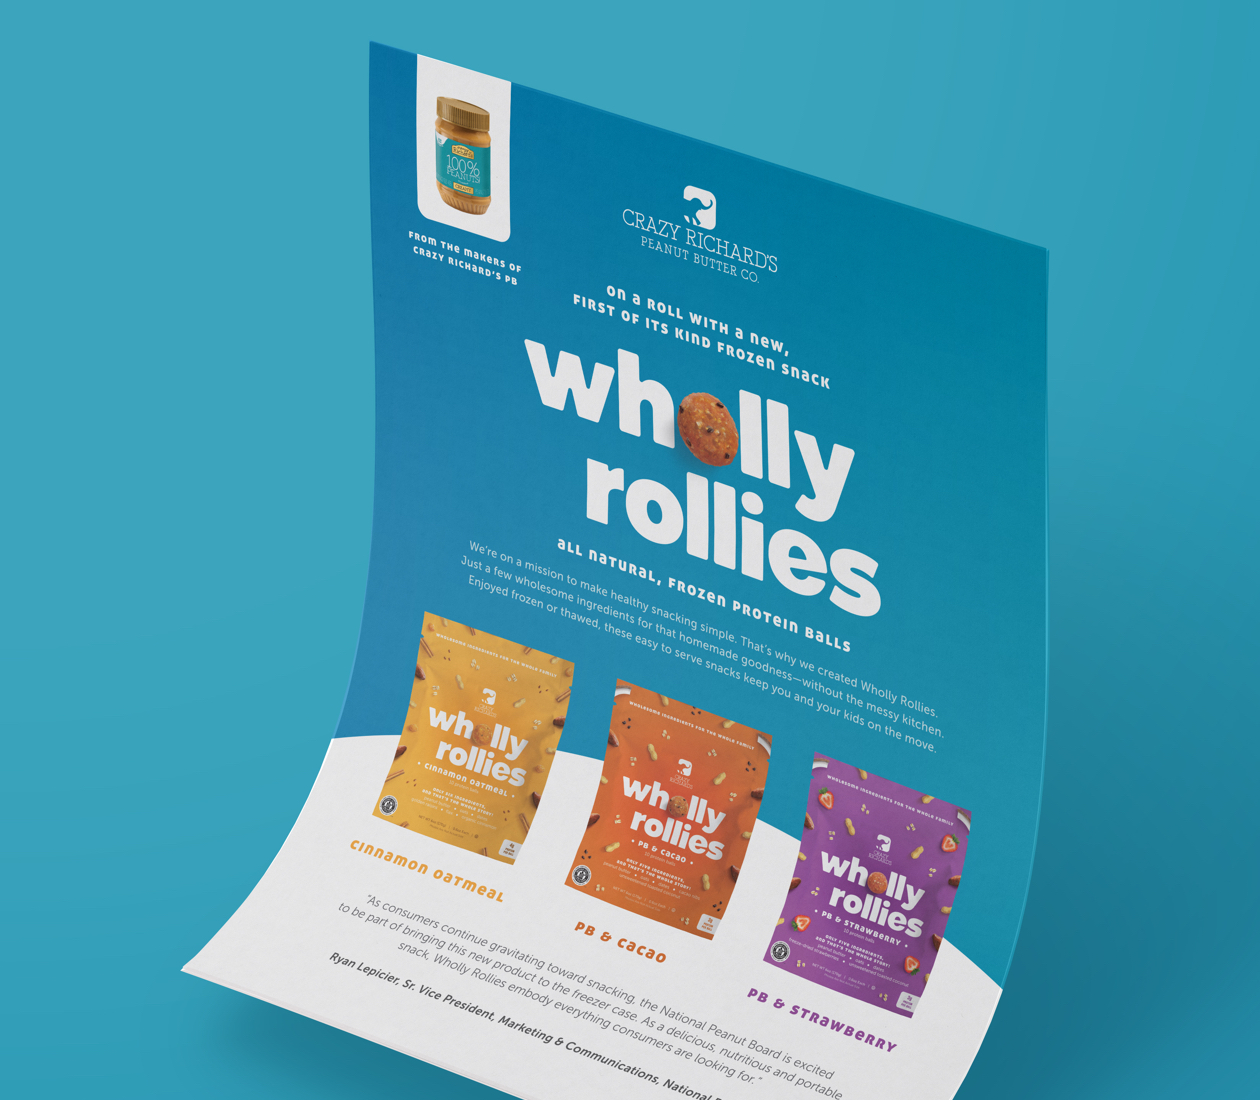 Wholly Rollies sales sheet